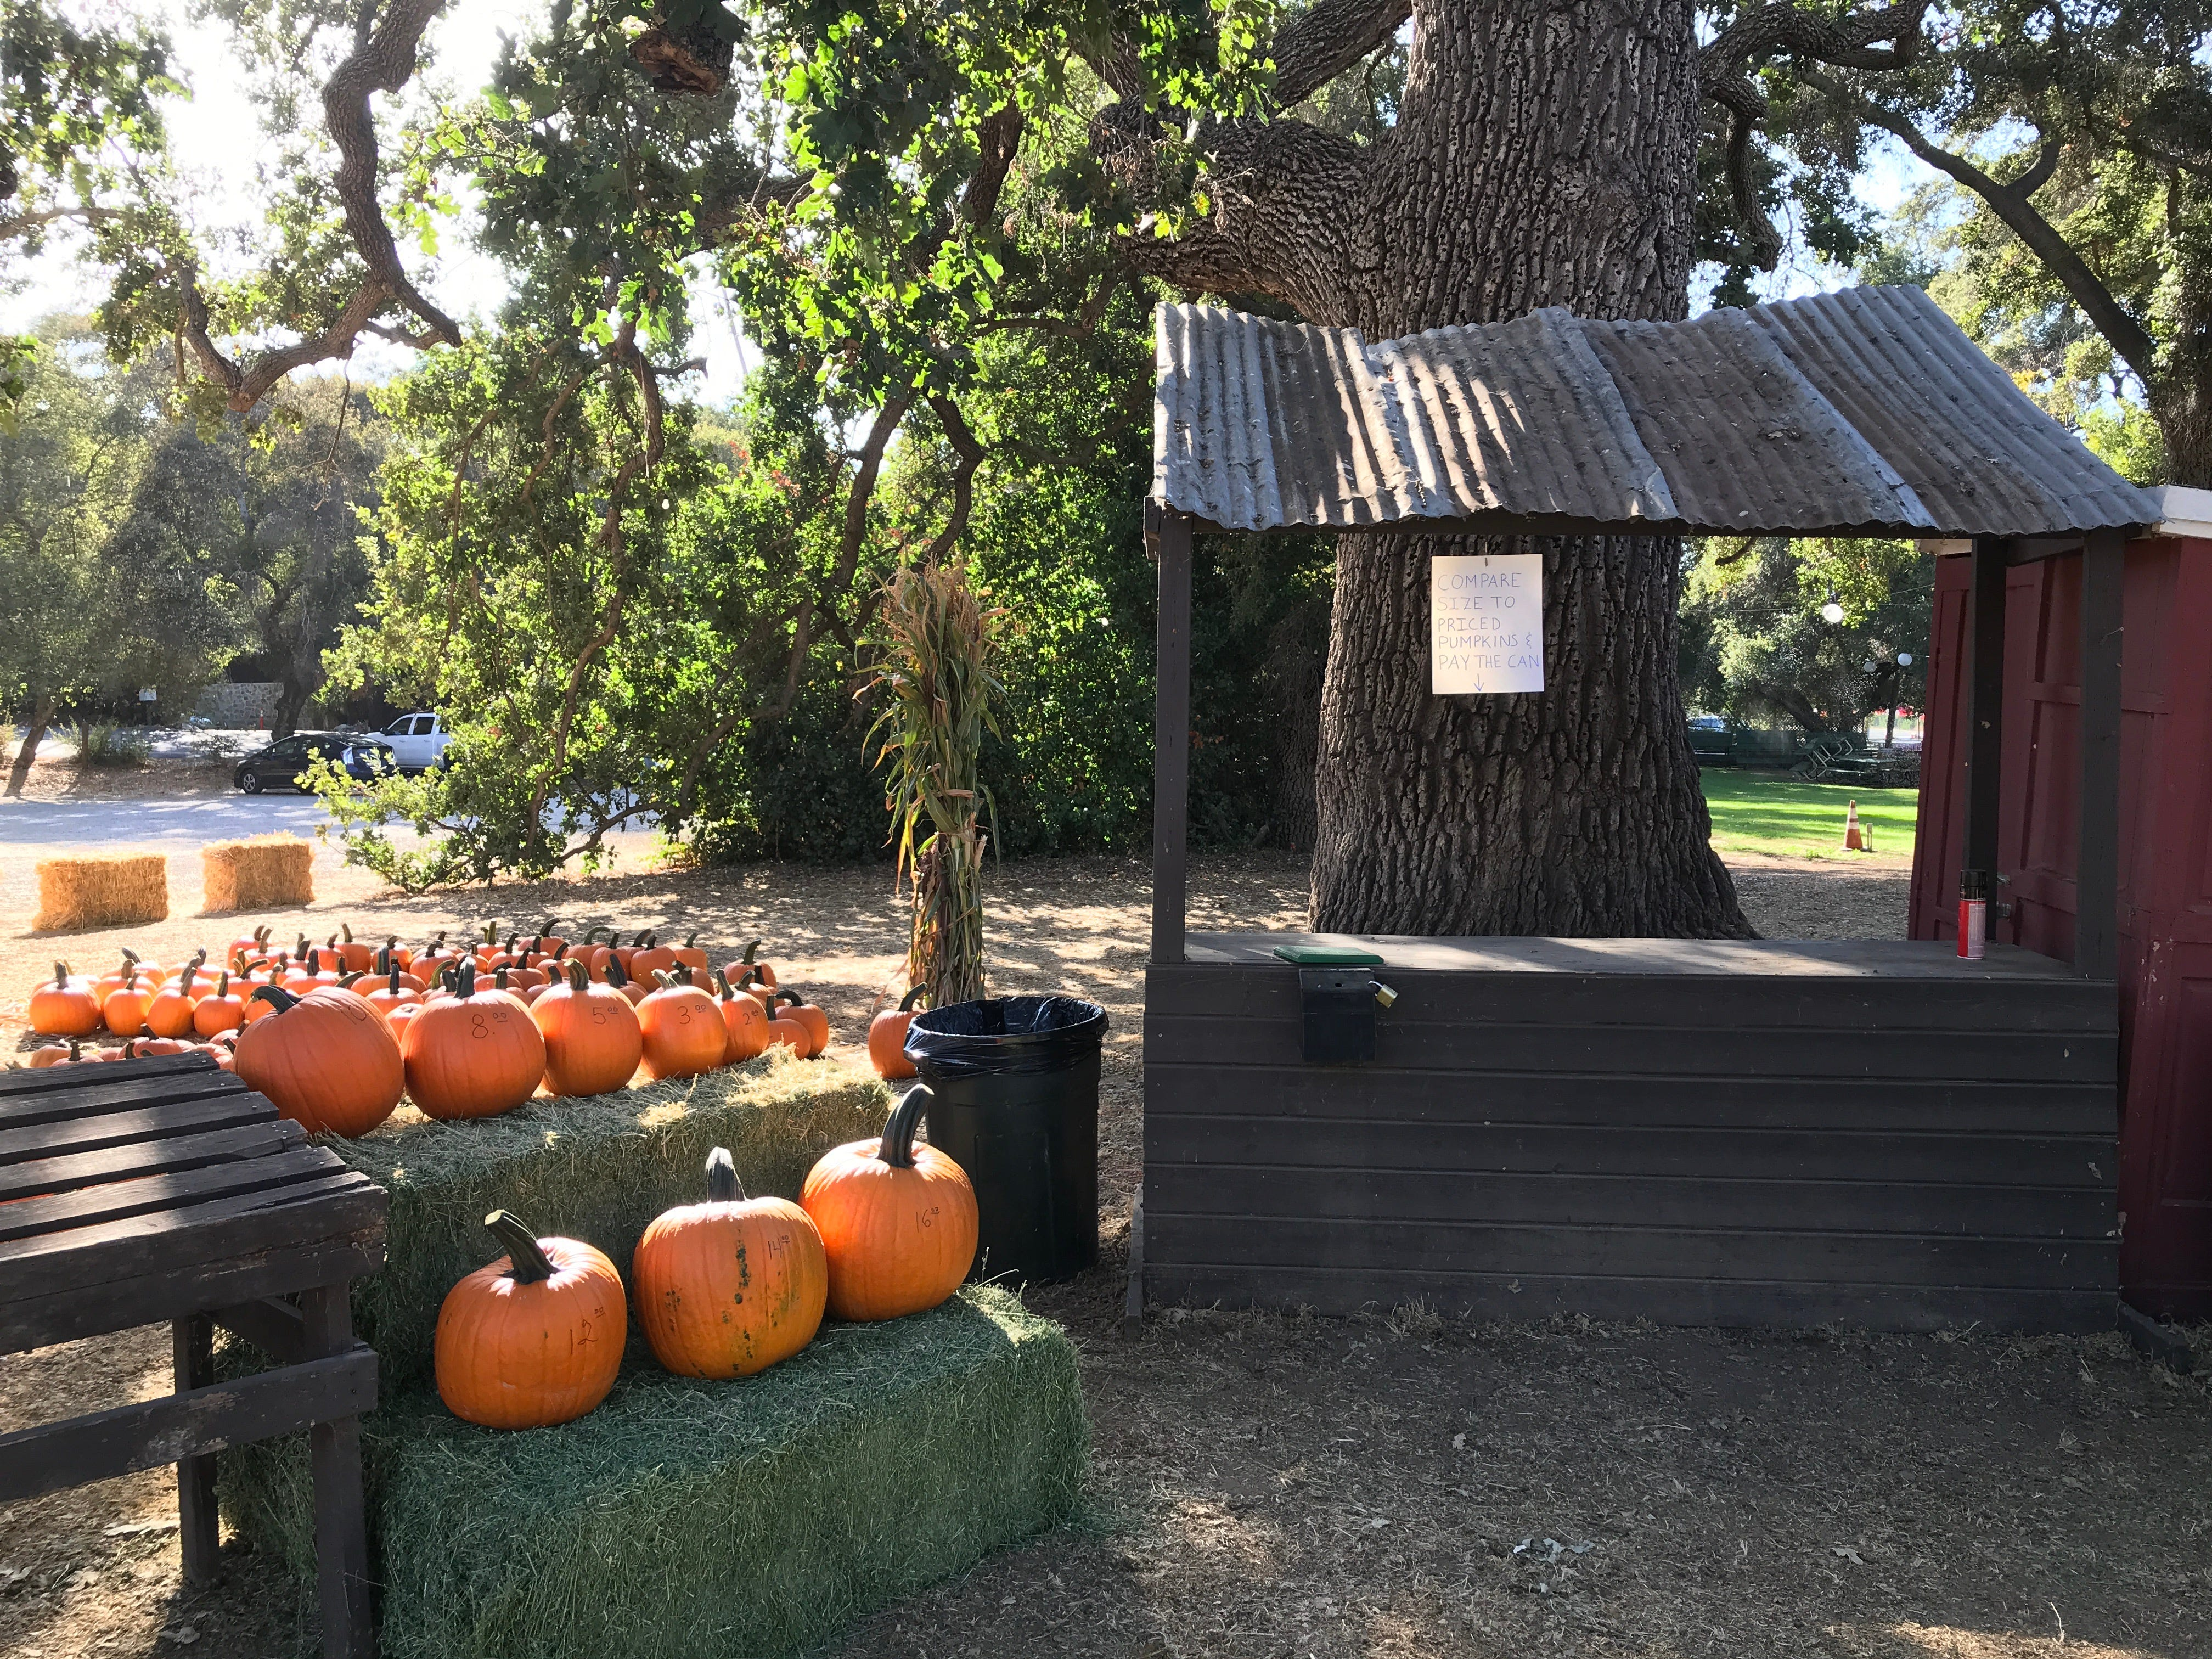 The pumpkin patch at Boccali's Pizza & Pasta restaurant in Ojai is open this year, but there is no haunted hayride.